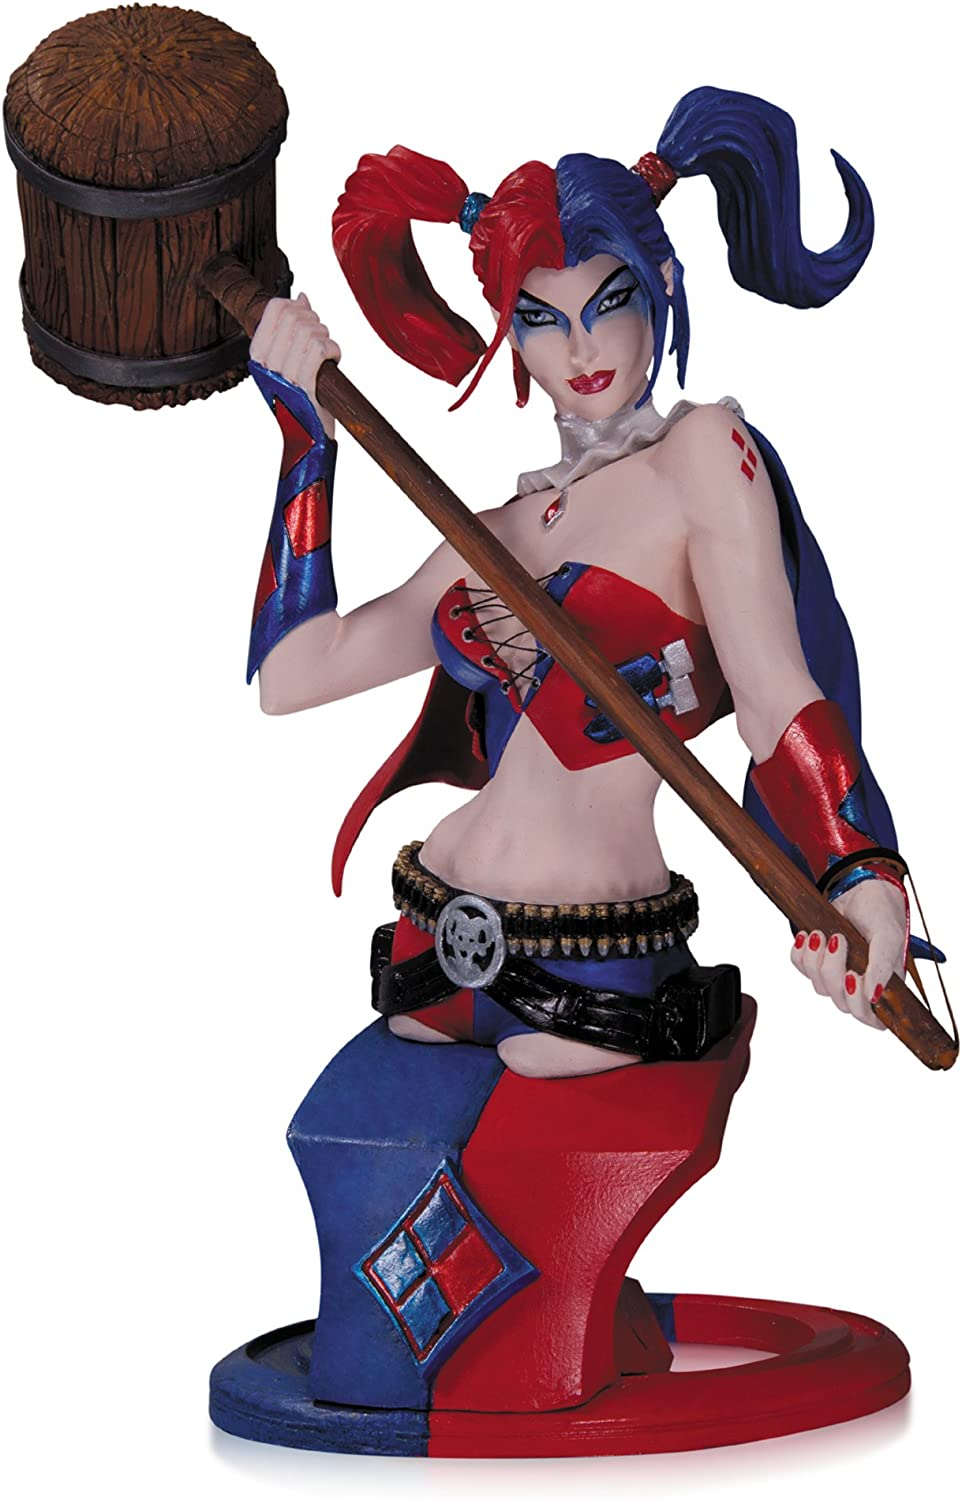 DC Comics Super Villains Harley Quinn Bust